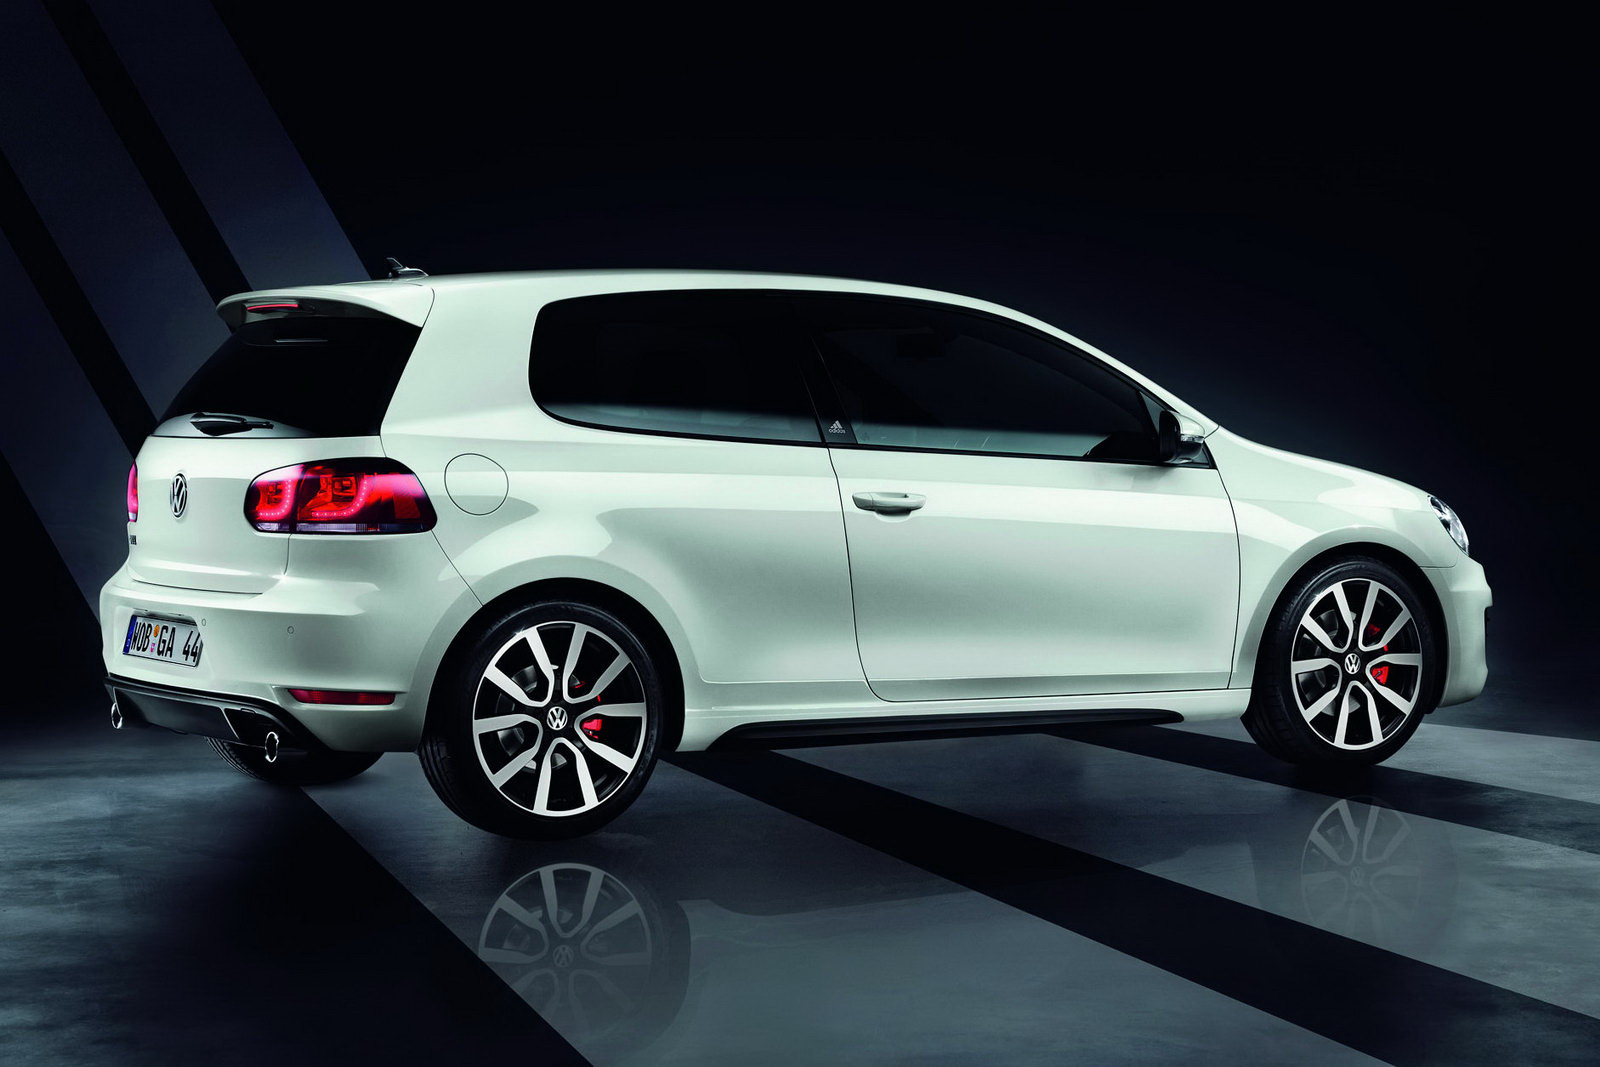 The Car Vw Golf Gti Adidas Special Unveiled Goes On Sale